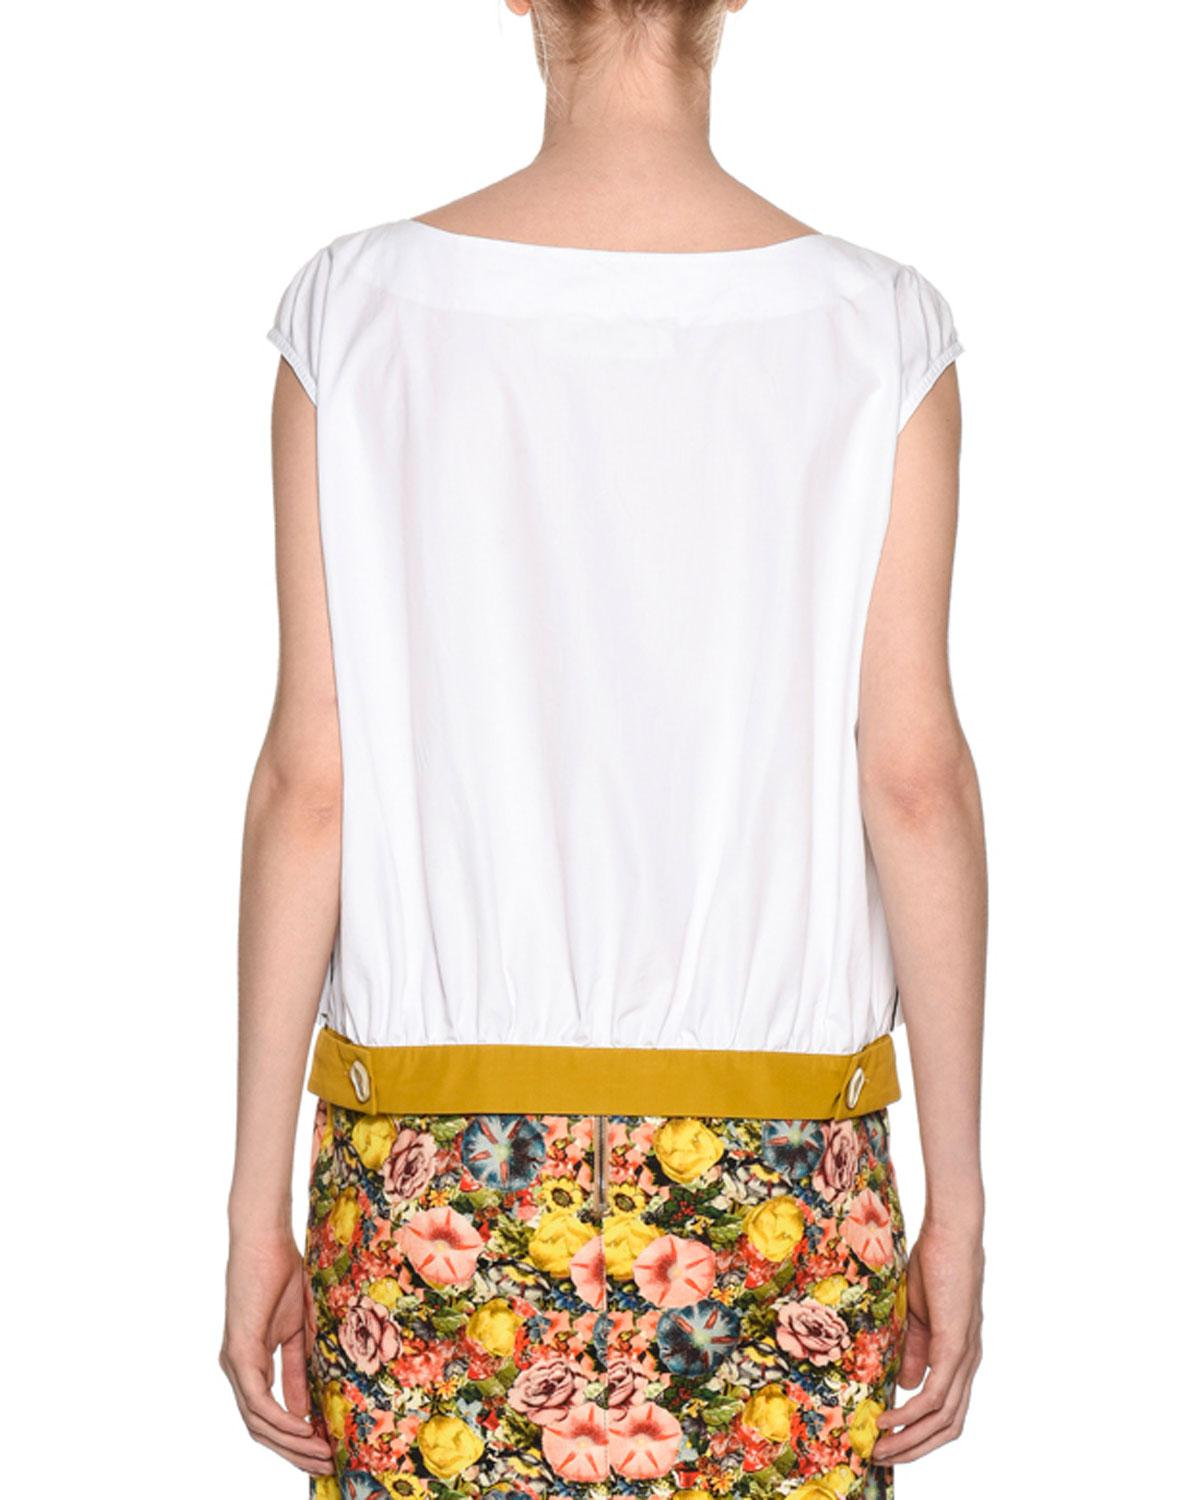 8f029fdf2d534c Lyst - Marni Sunflower Tank Top in White - Save 14%